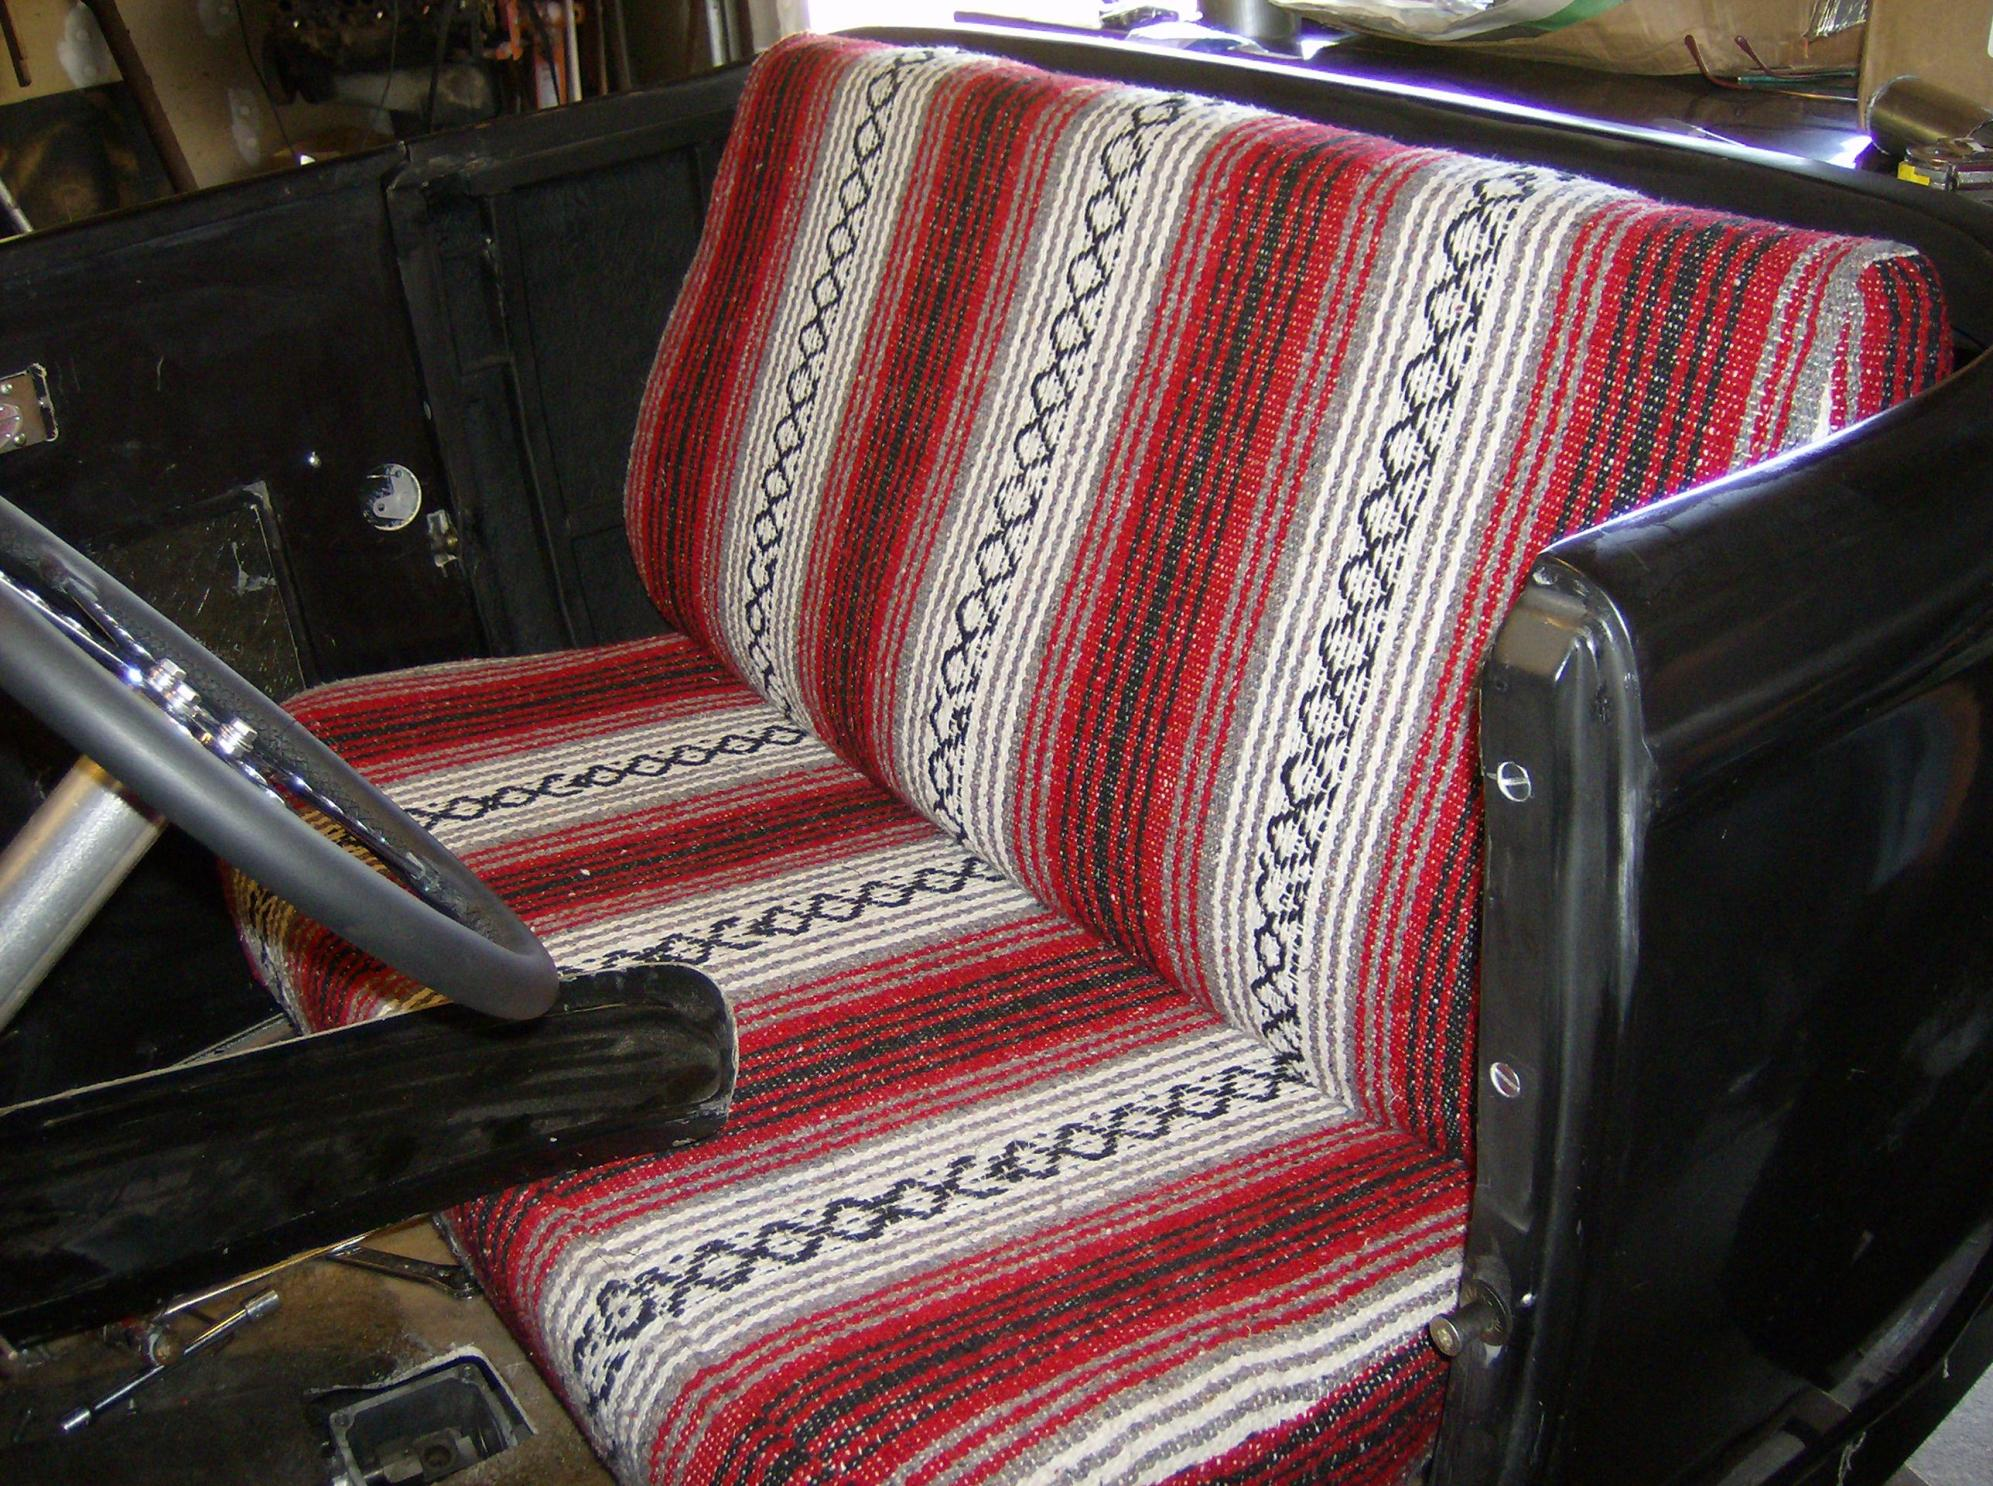 hpim0834 jpg - 18 Things To Know About Mexican Blanket Seat Cover